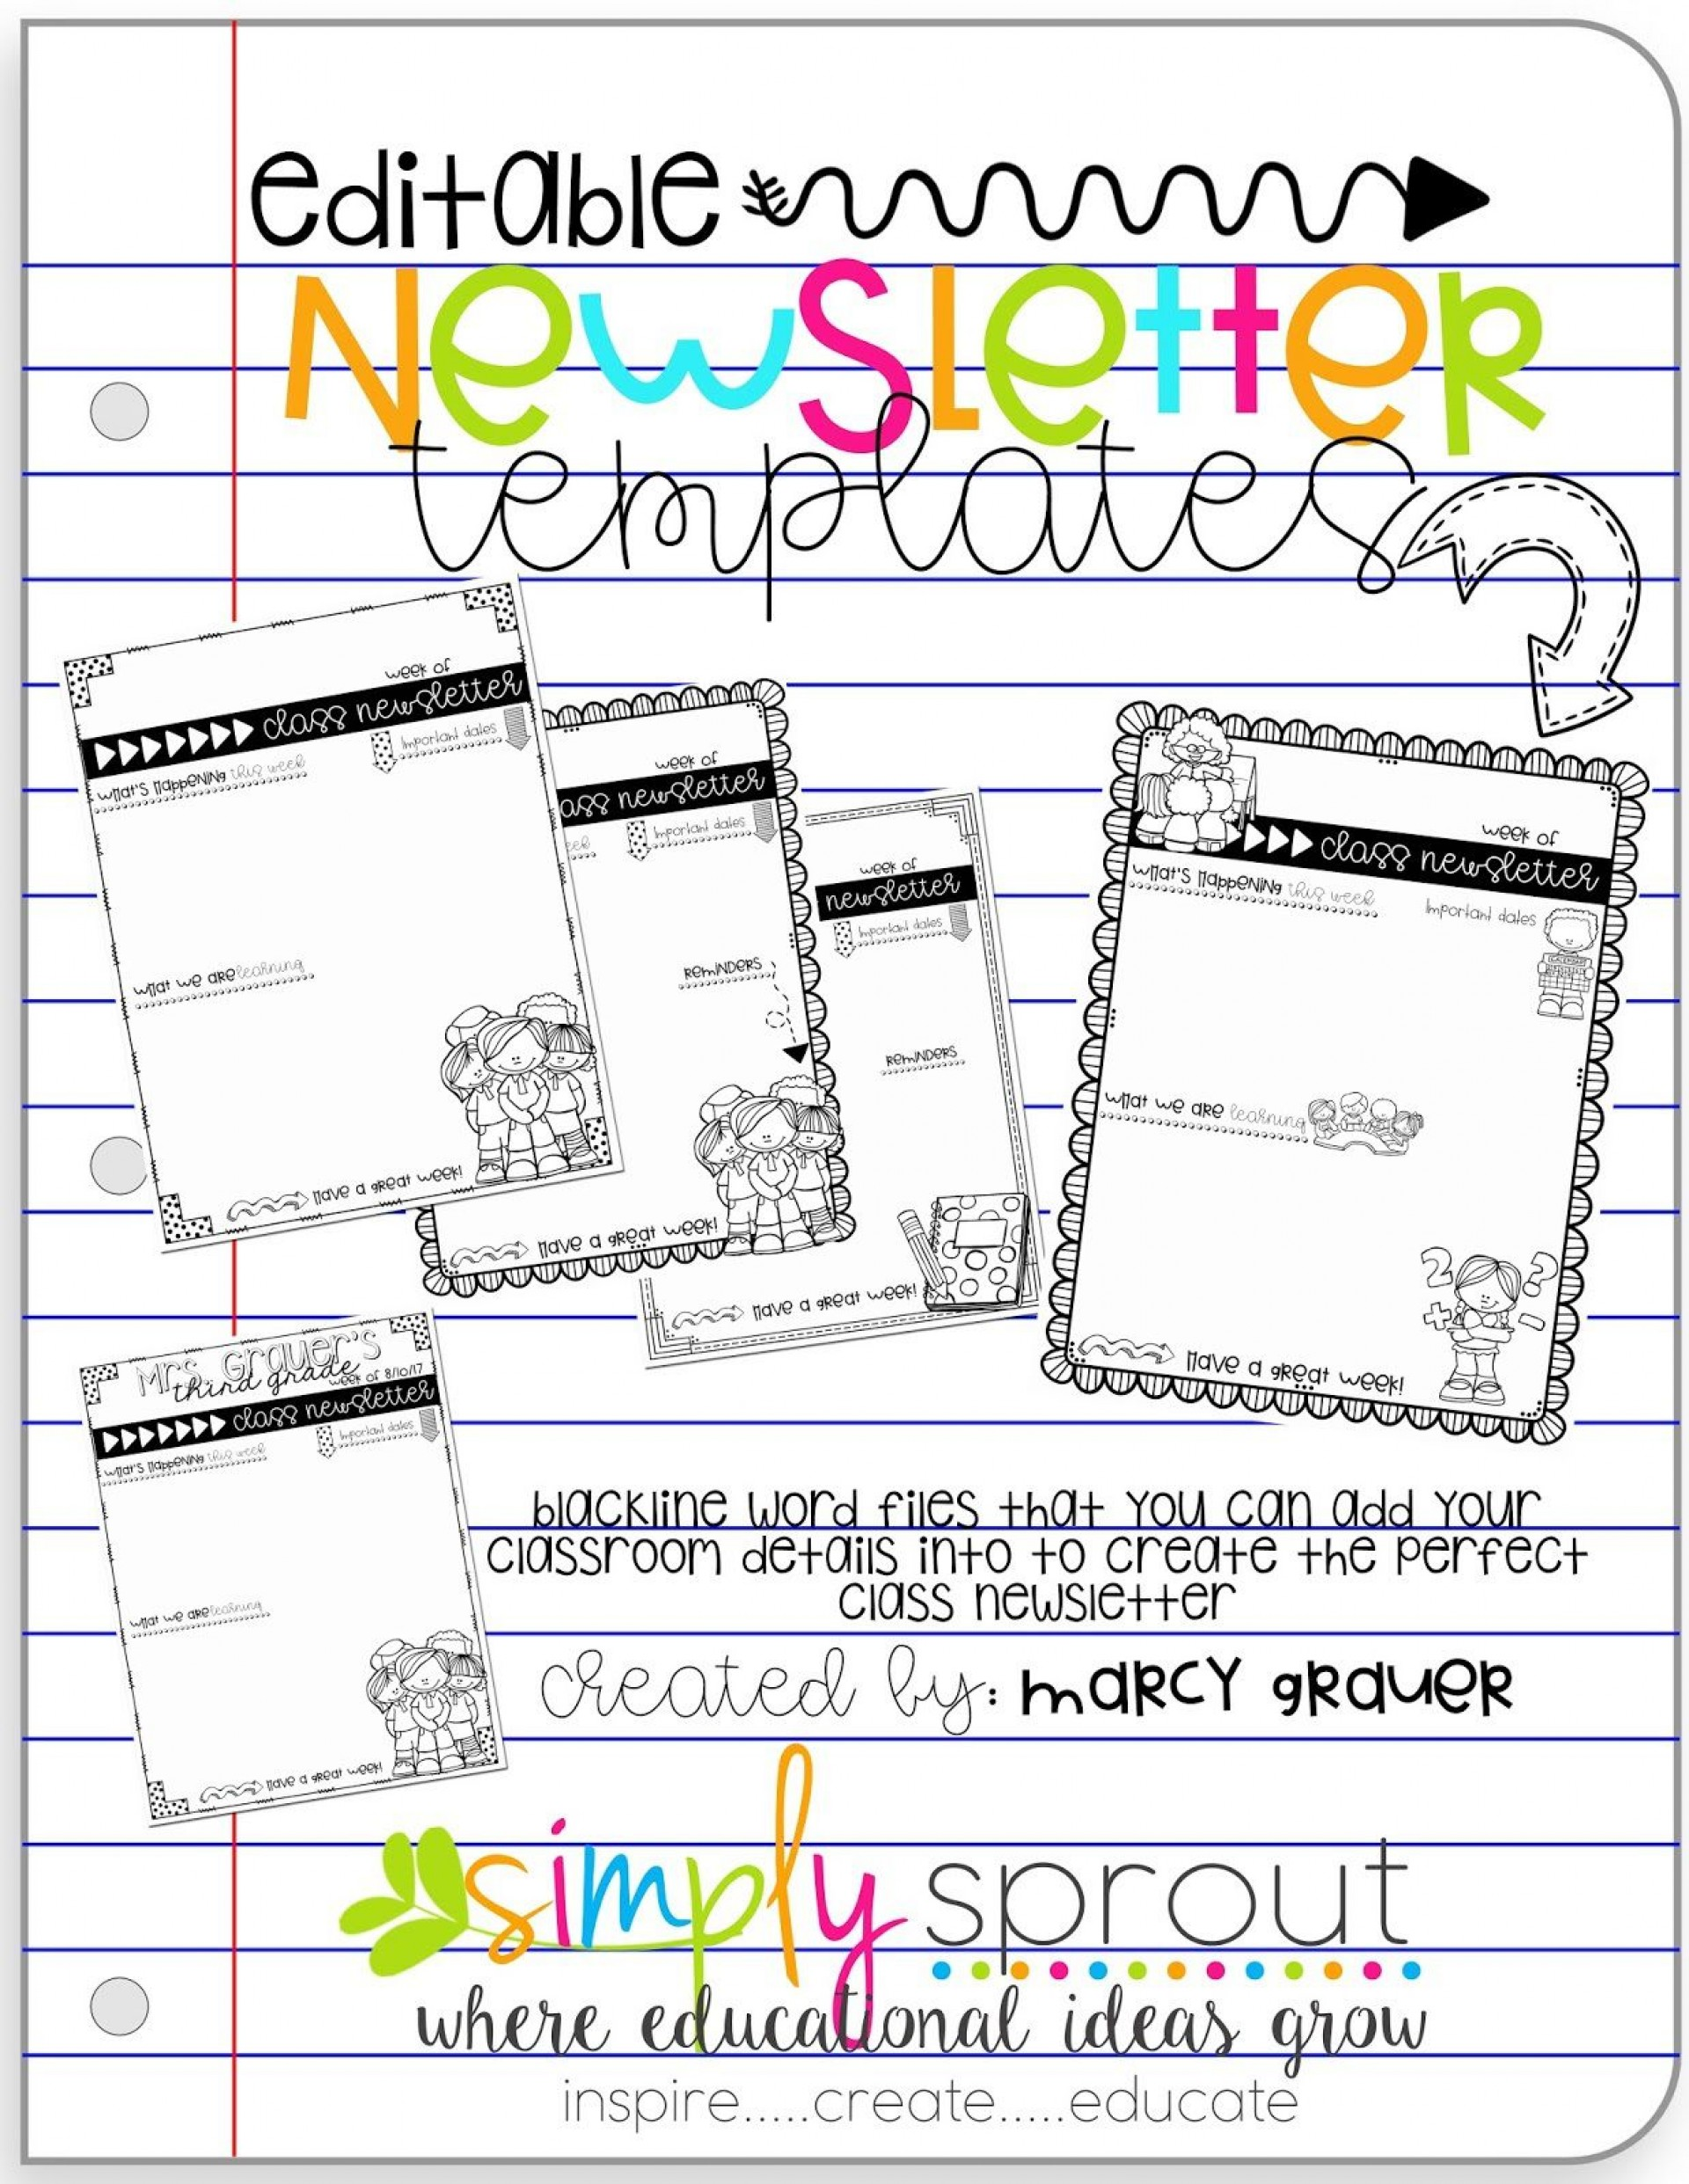 009 Astounding School Newsletter Template Free Image  Word Download Counselor1920